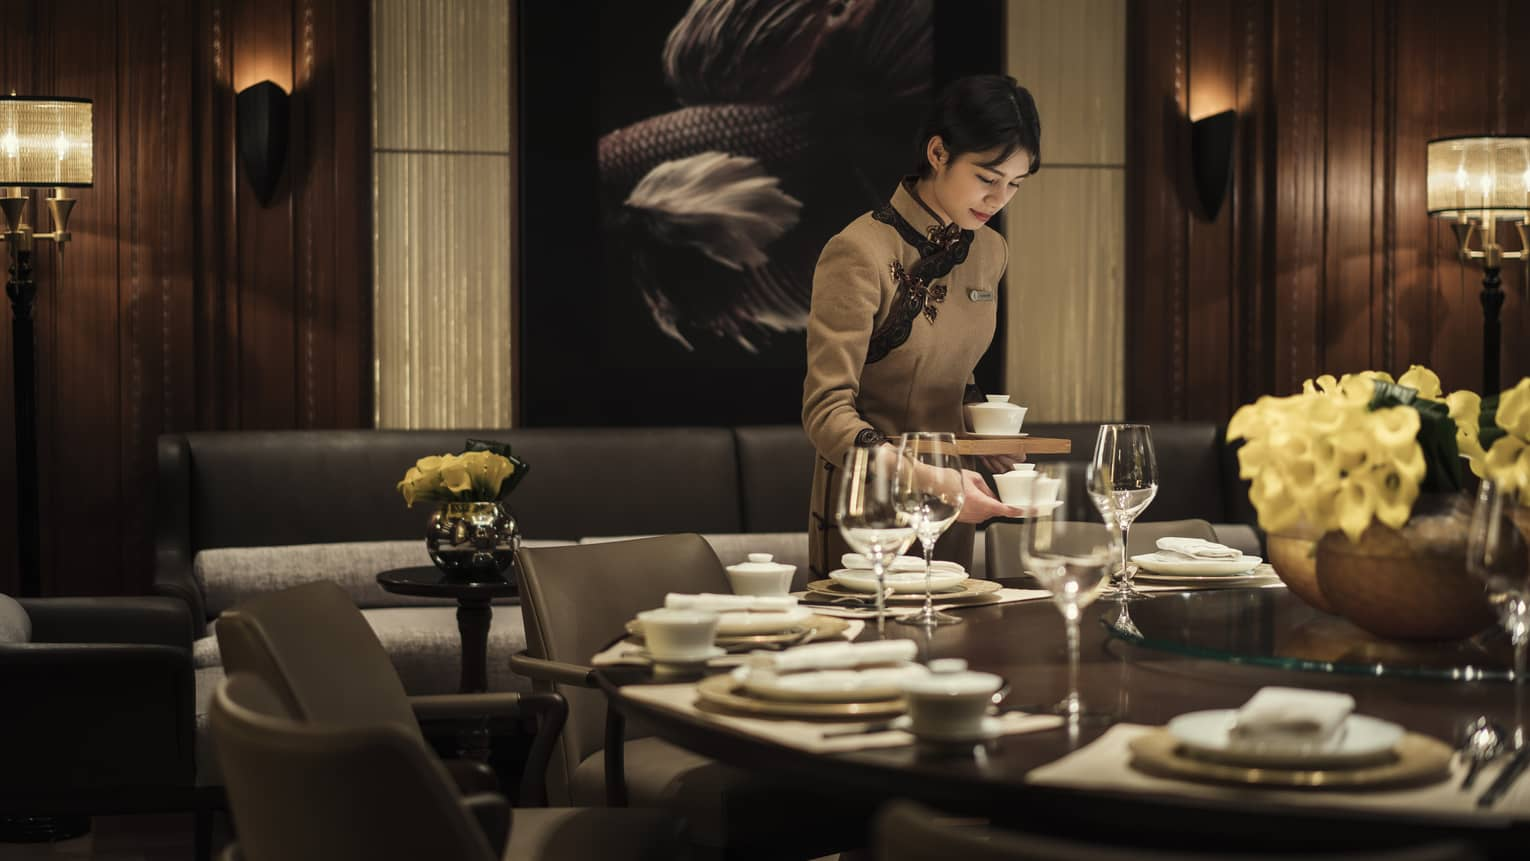 Hotel staff sets dishes on restaurant table